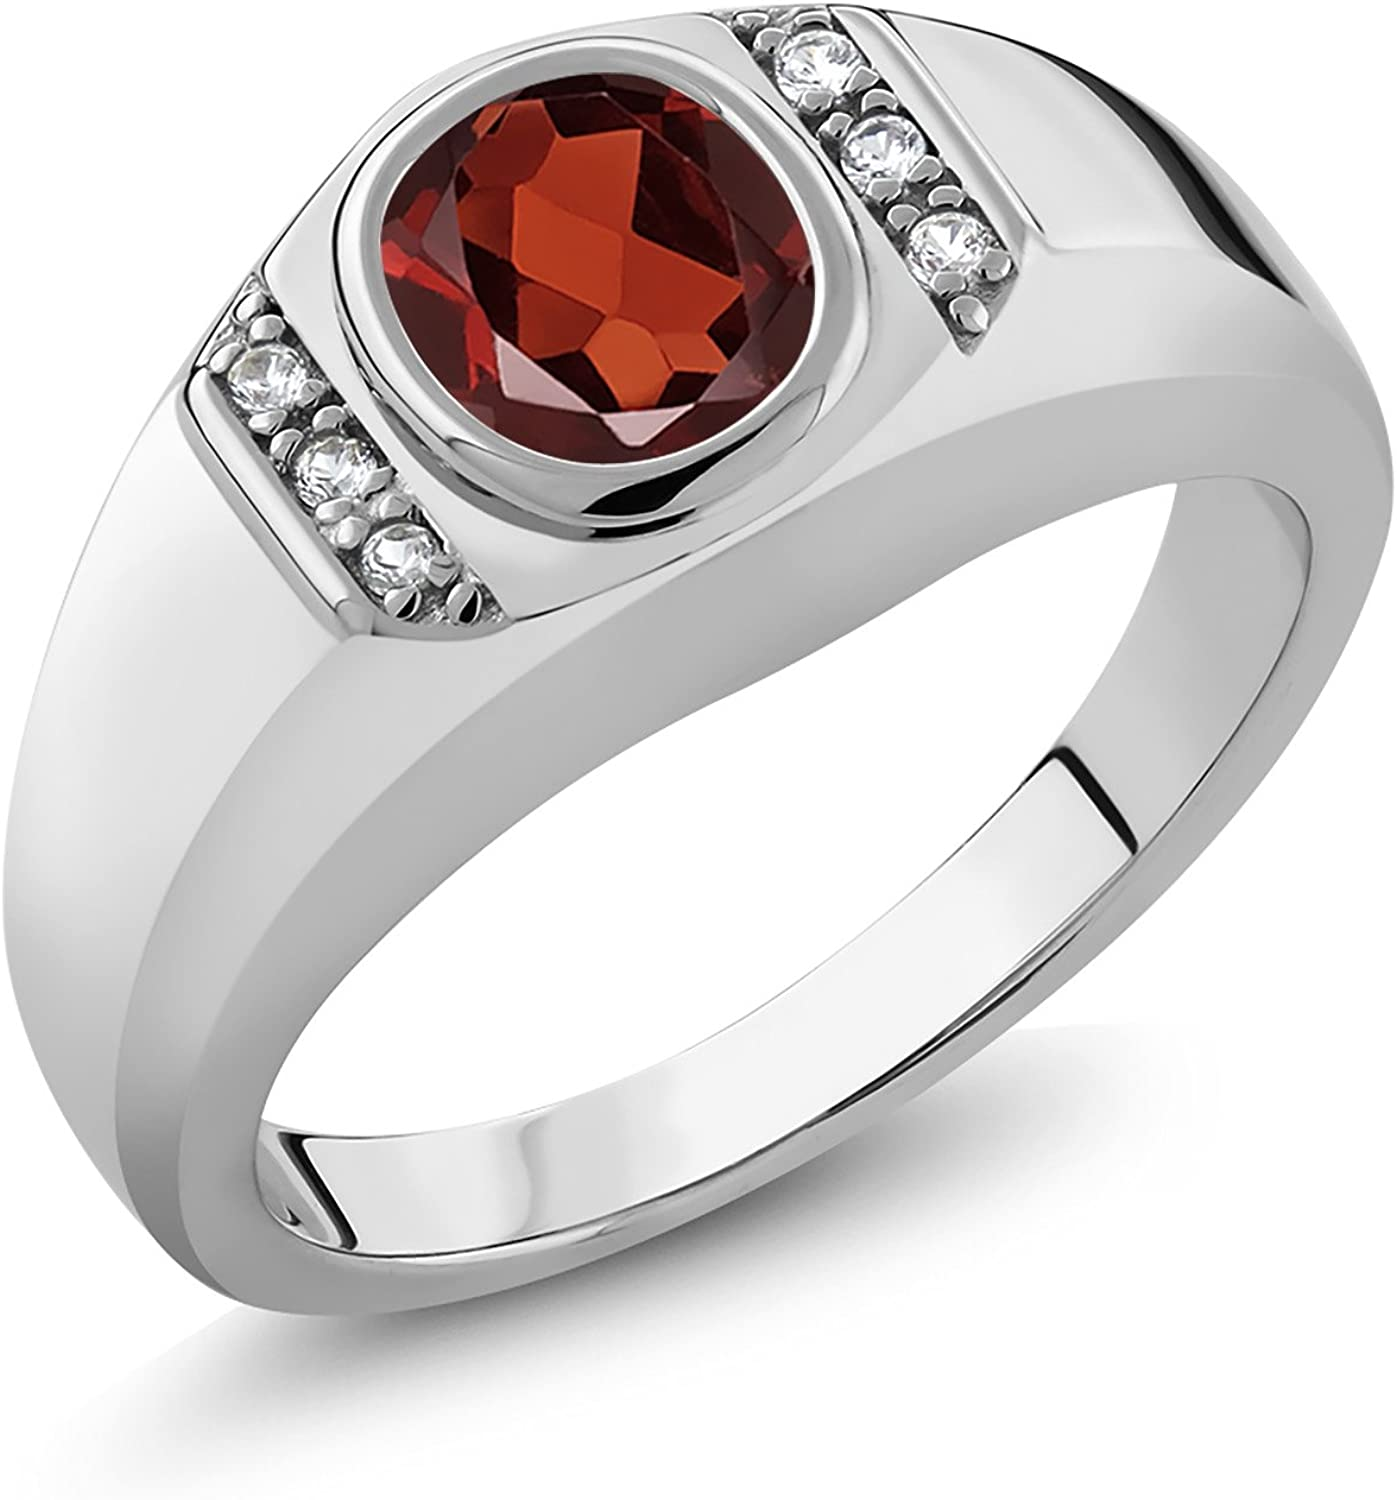 Gem Stone King Men's 925 Sterling Silver Red Garnet and White Created Sapphire Ring (1.26 Ct Oval, Available 7,8,9,10,11,12,13)